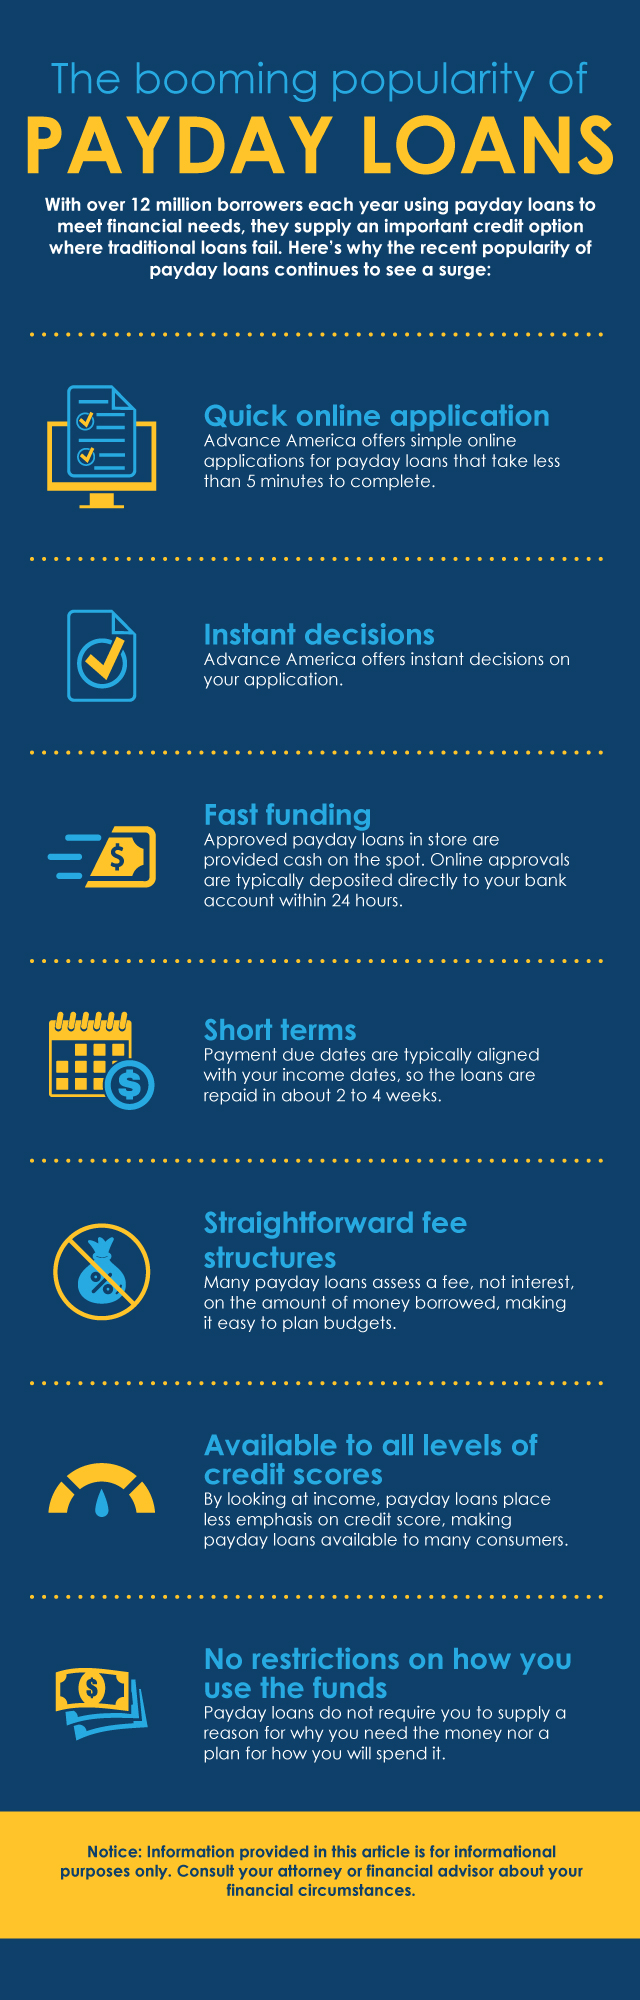 why payday loans are popular